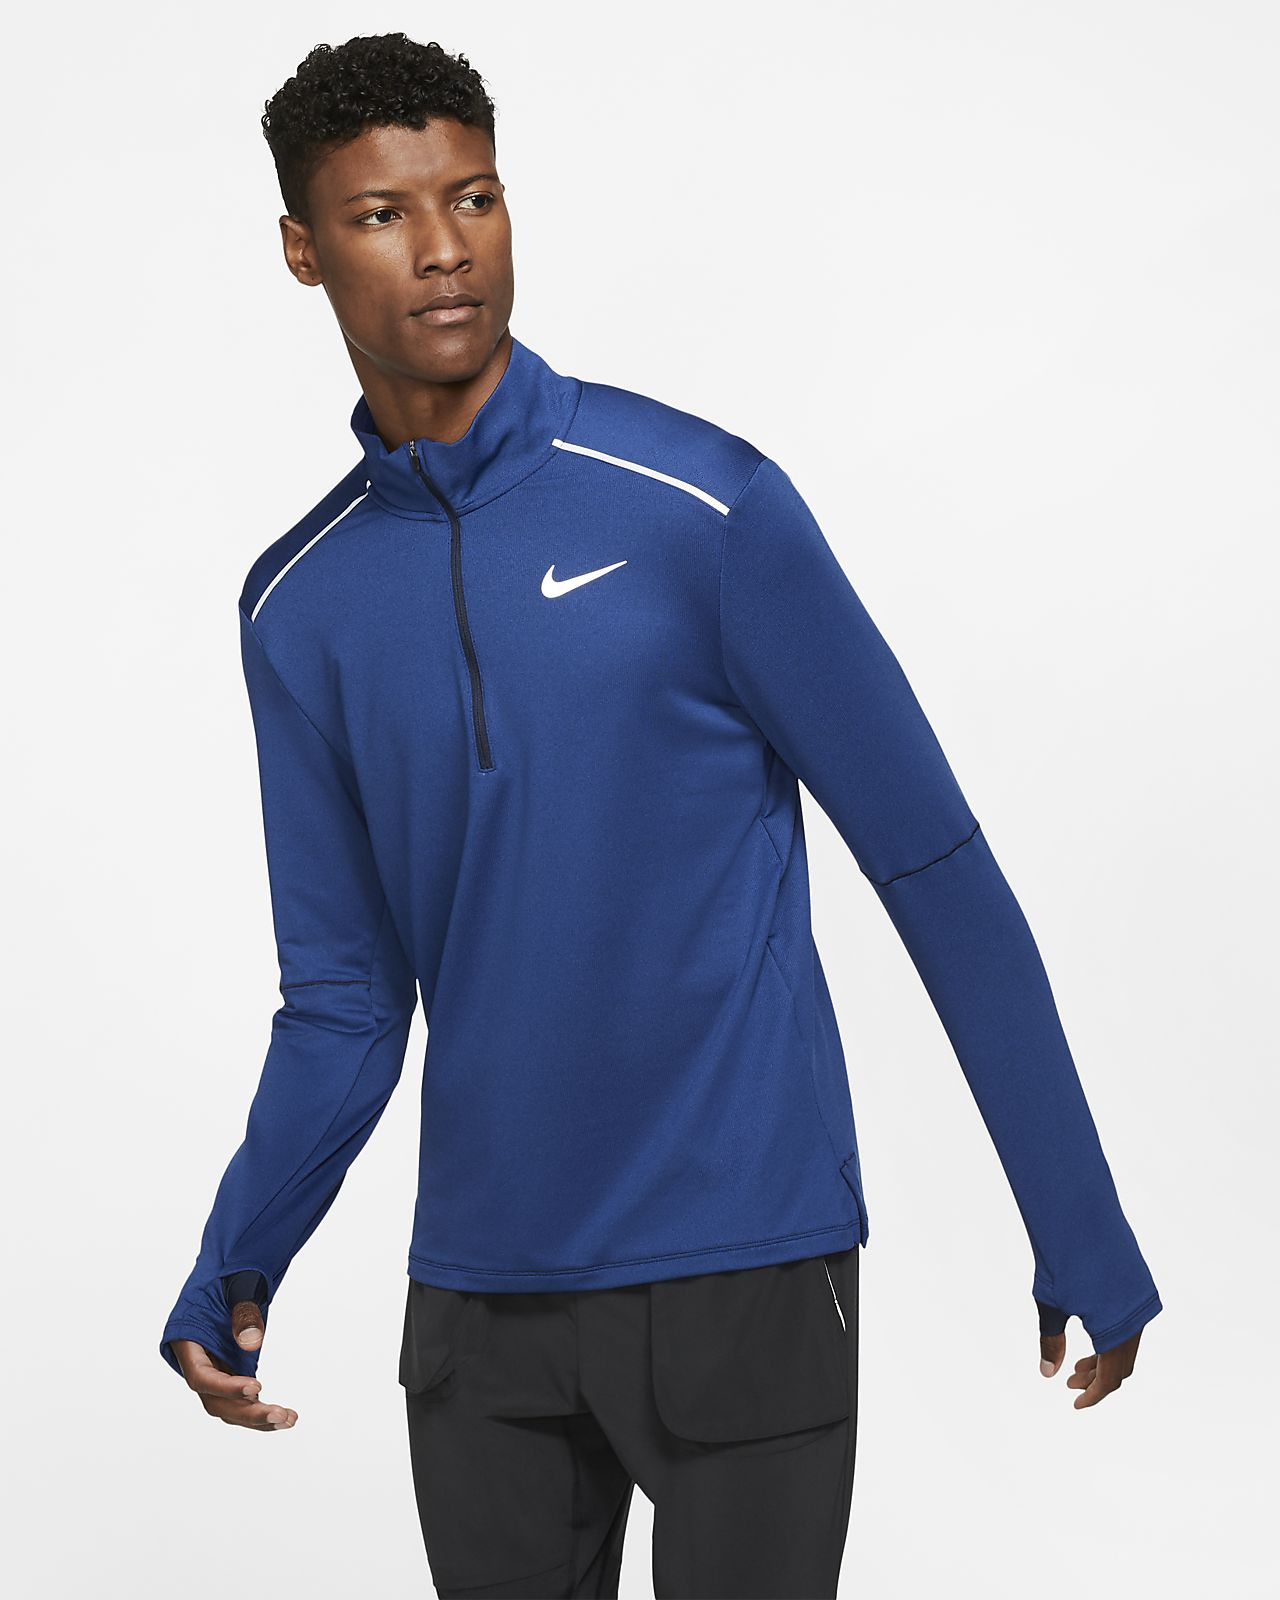 Nike 3.0 Men's 1/2-Zip Running Top